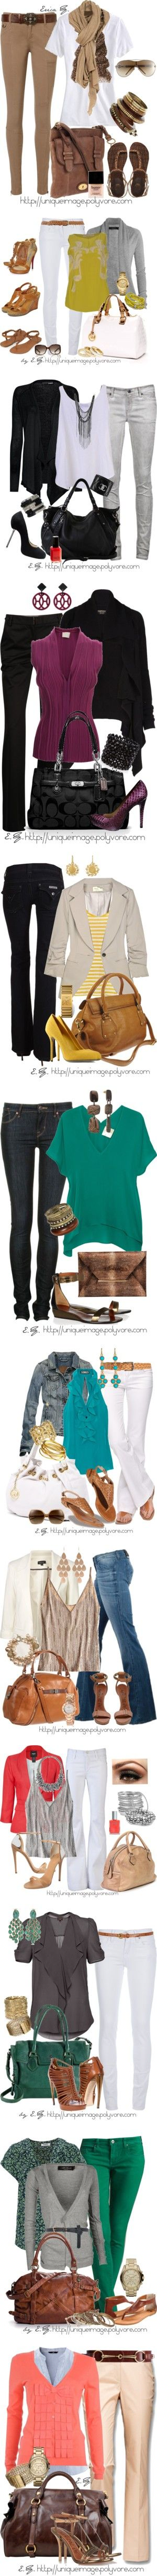 Great ideas on combining clothes to make great Outfits